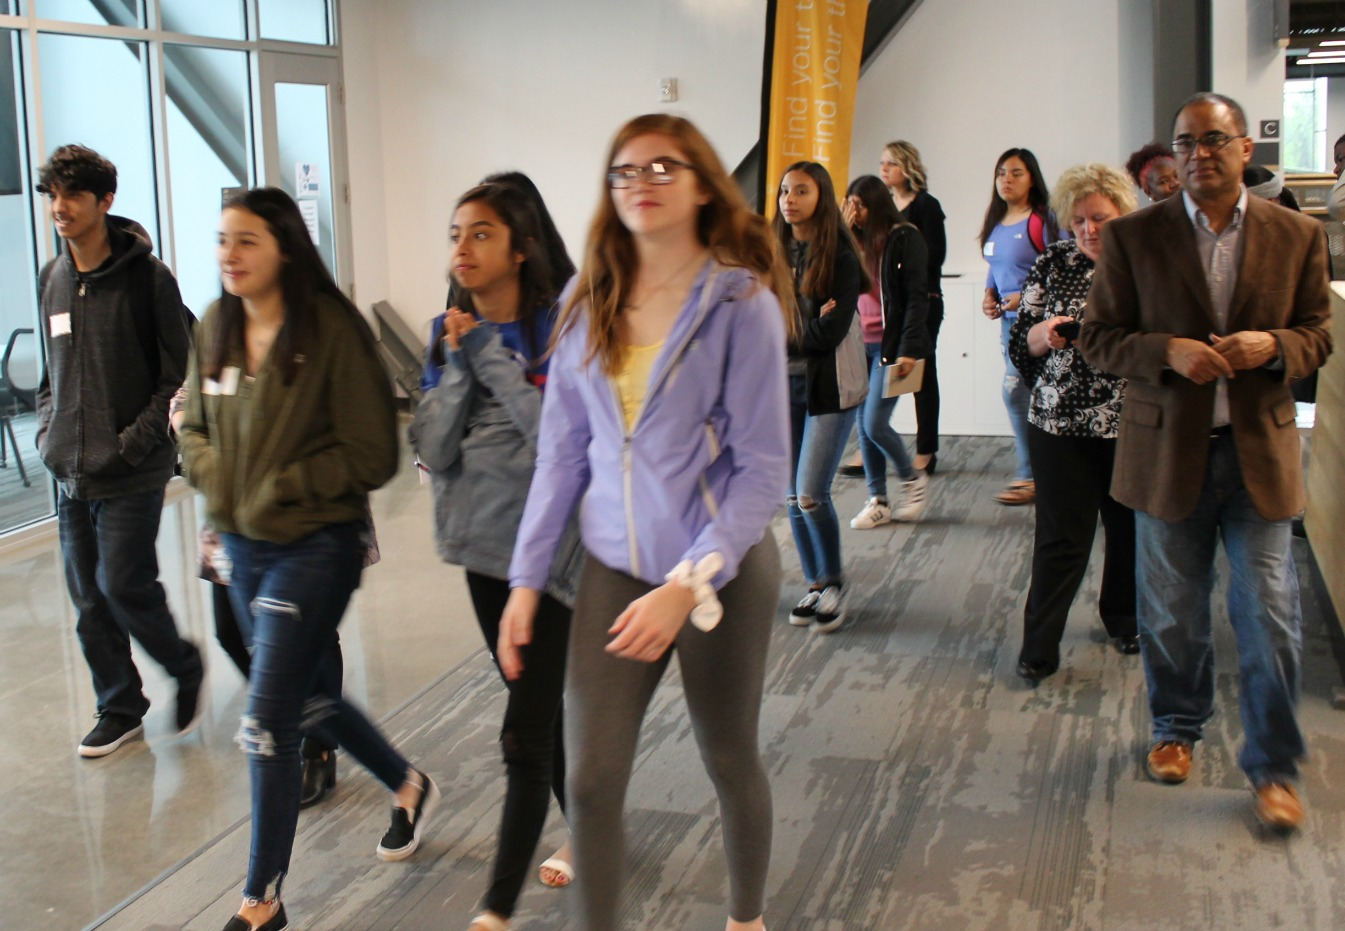 Students from 20/20 Leadership tour the Missouri Innovation Campus as part of a two-day event hosted by the University of Central Missouri Lee's Summit.  (Photo courtesy UCM-Lee's Summit)